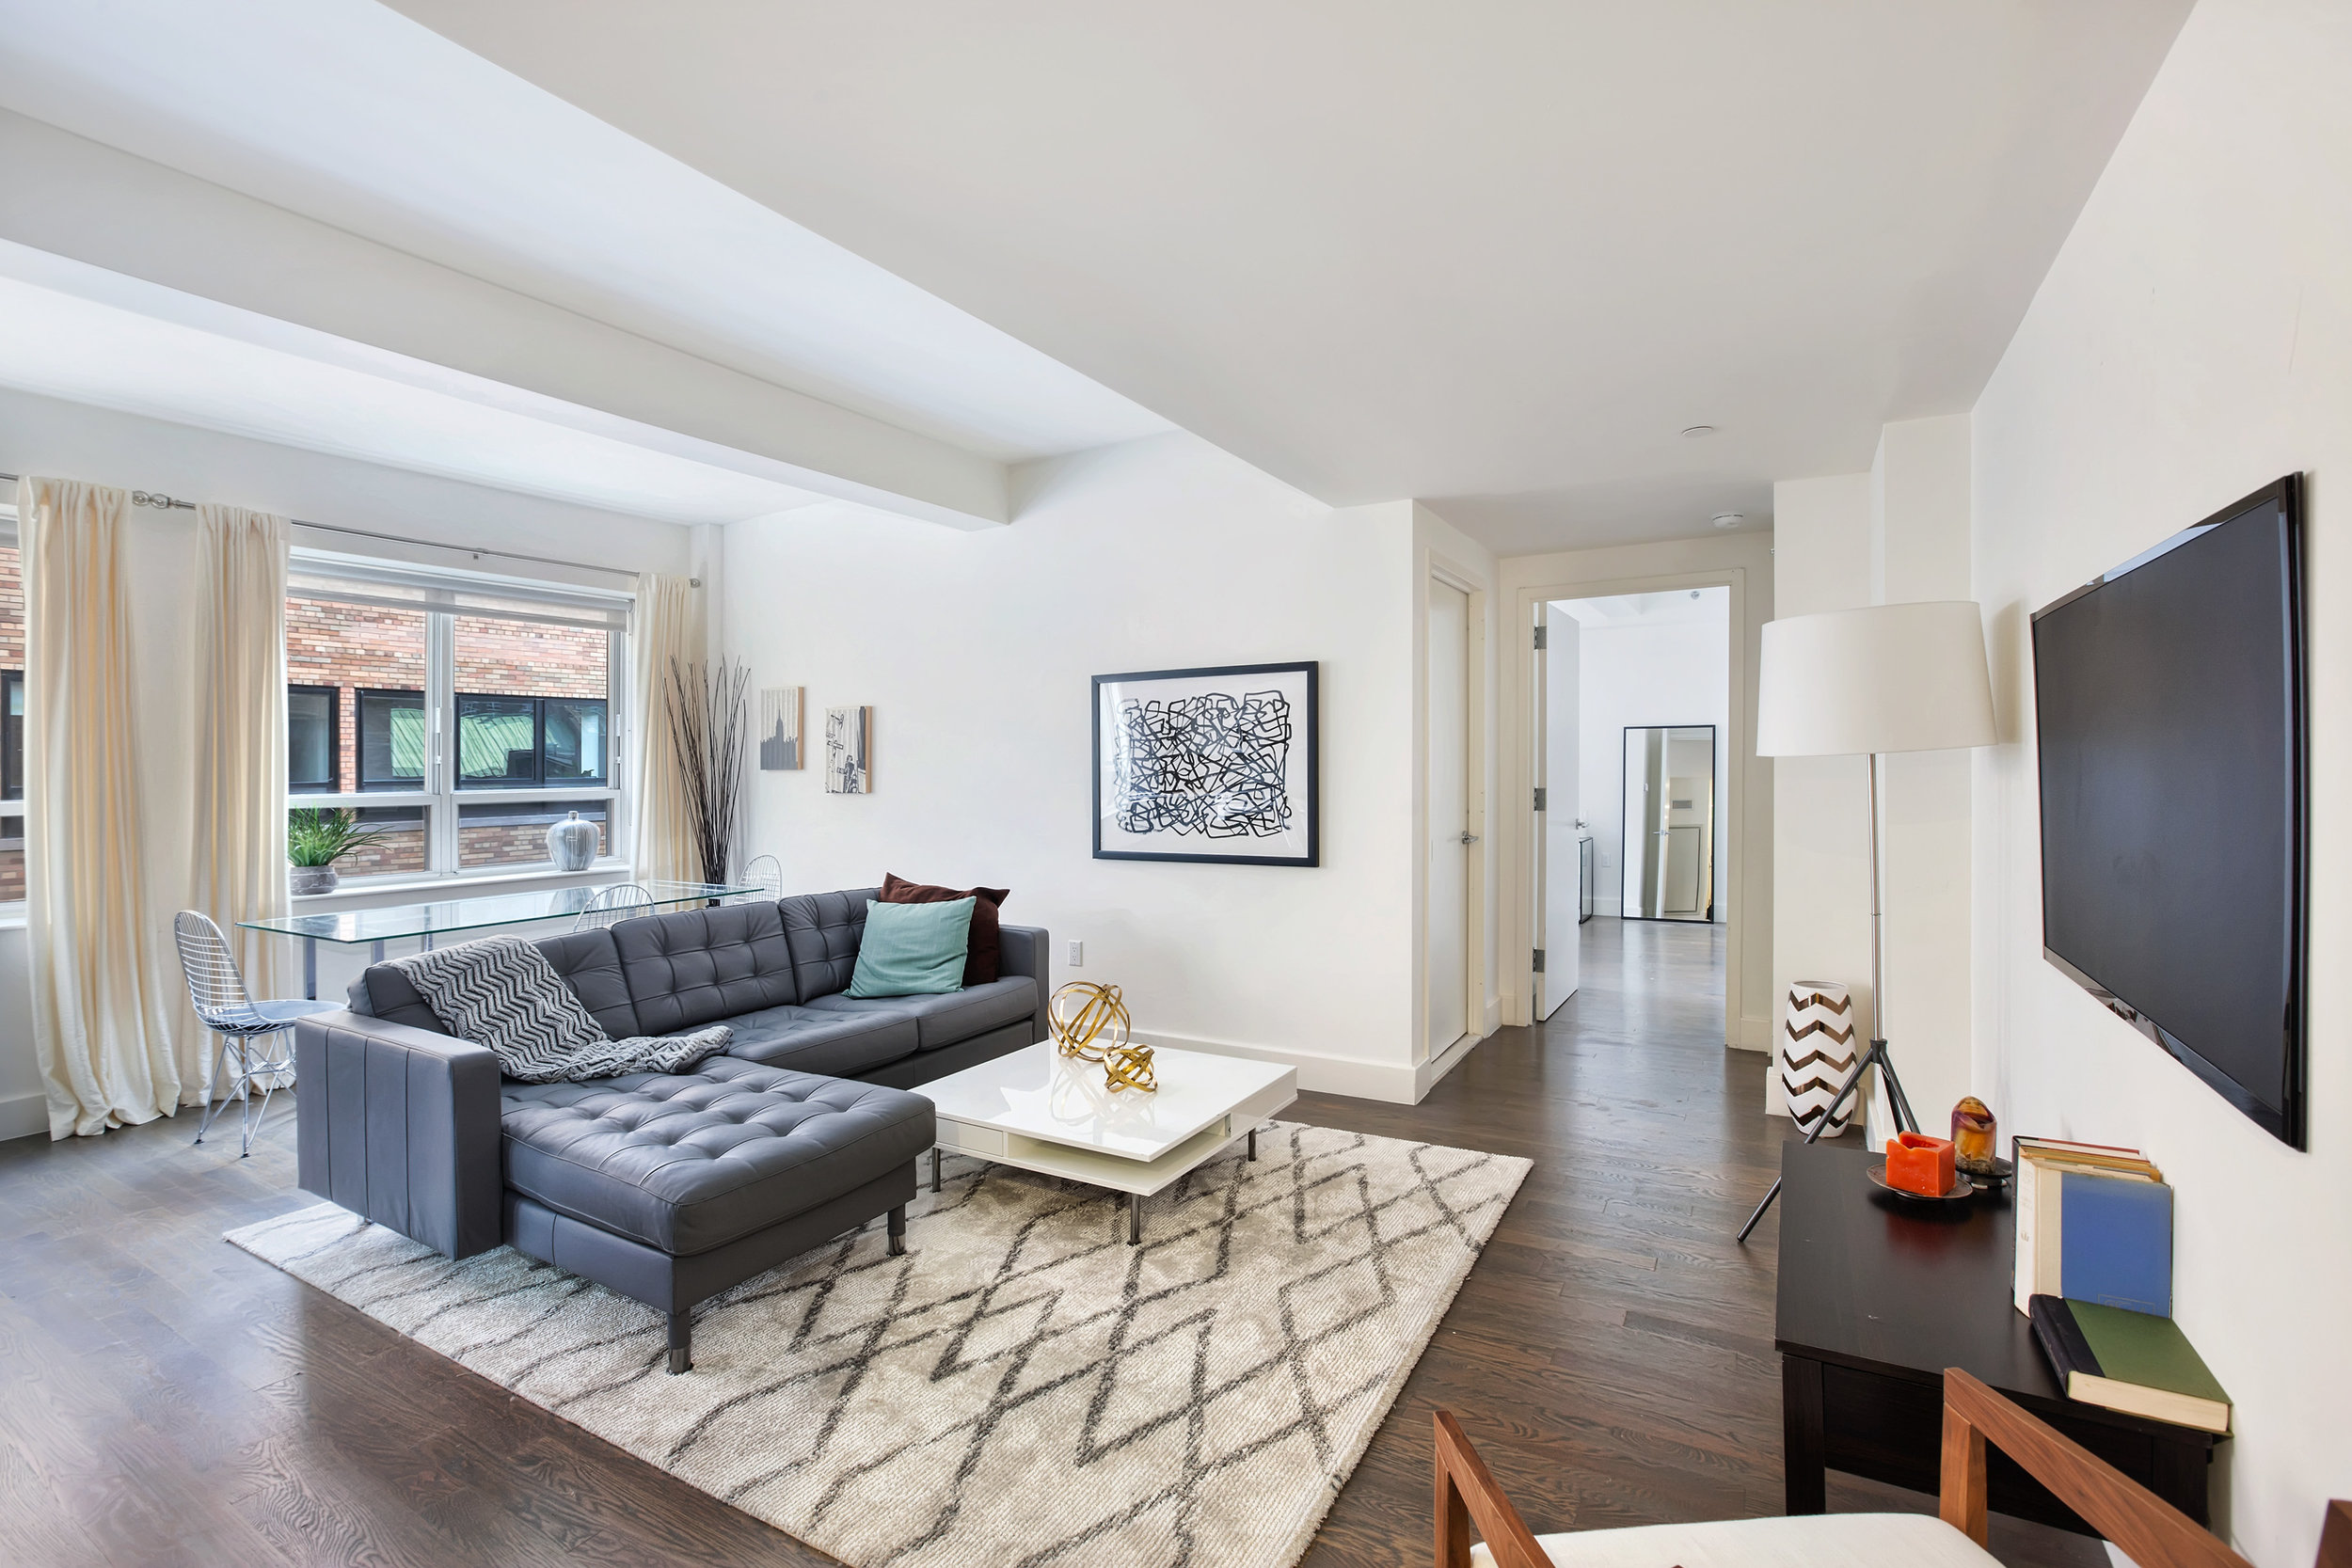 432 West 52nd Street, Unit 6A - $1,500,000